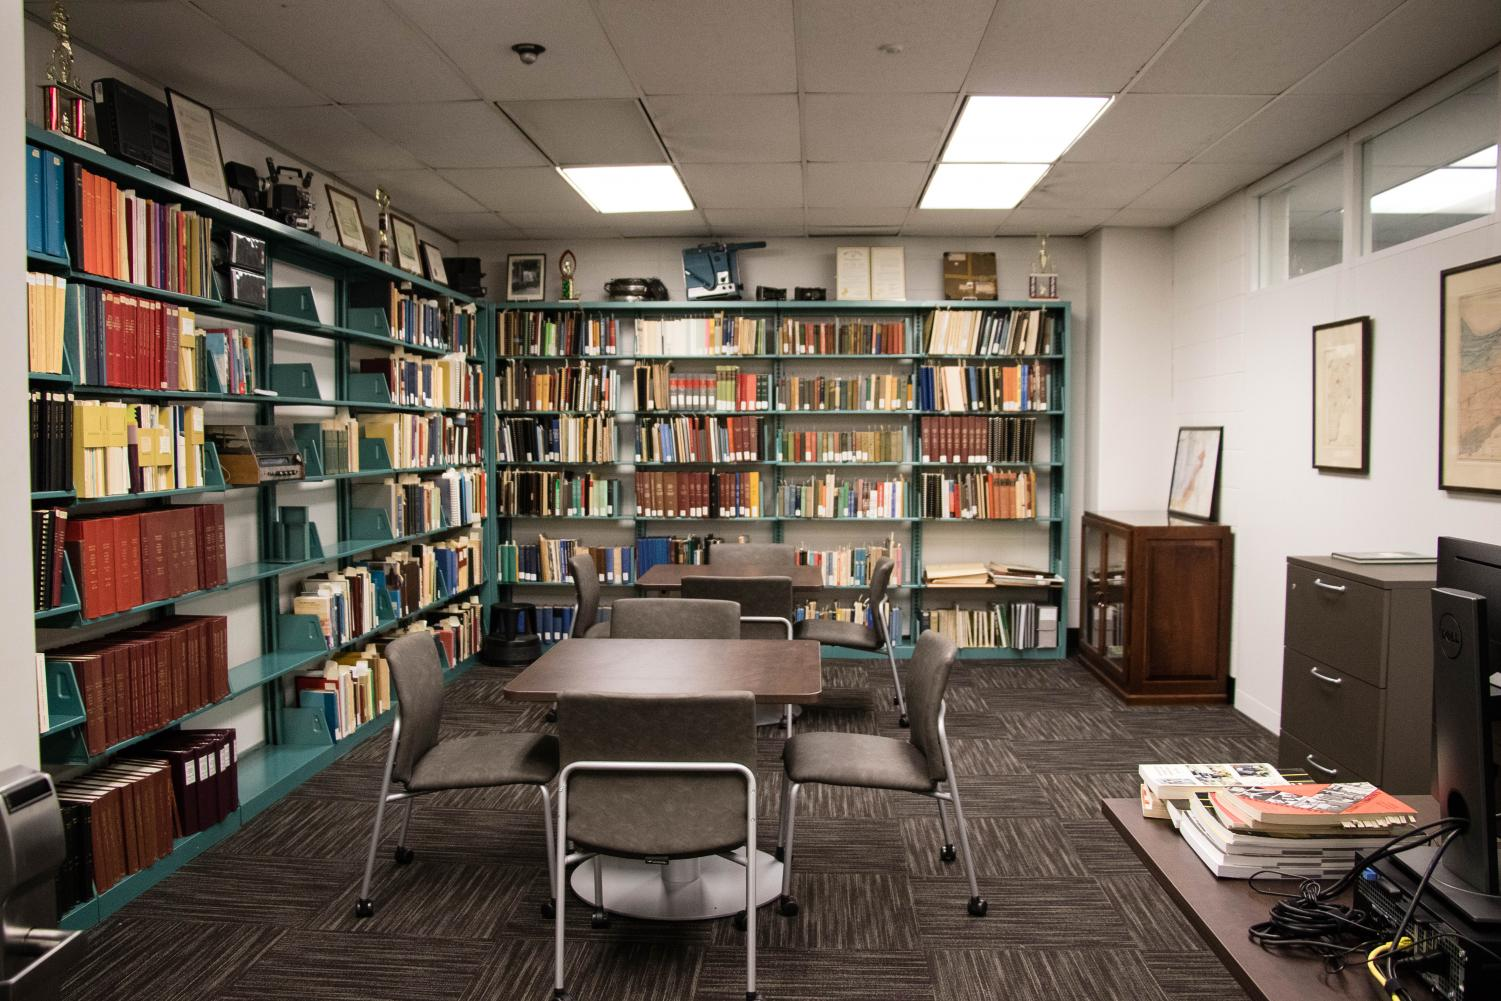 The Research Room on the Hammond campus contains historical documents from the university.